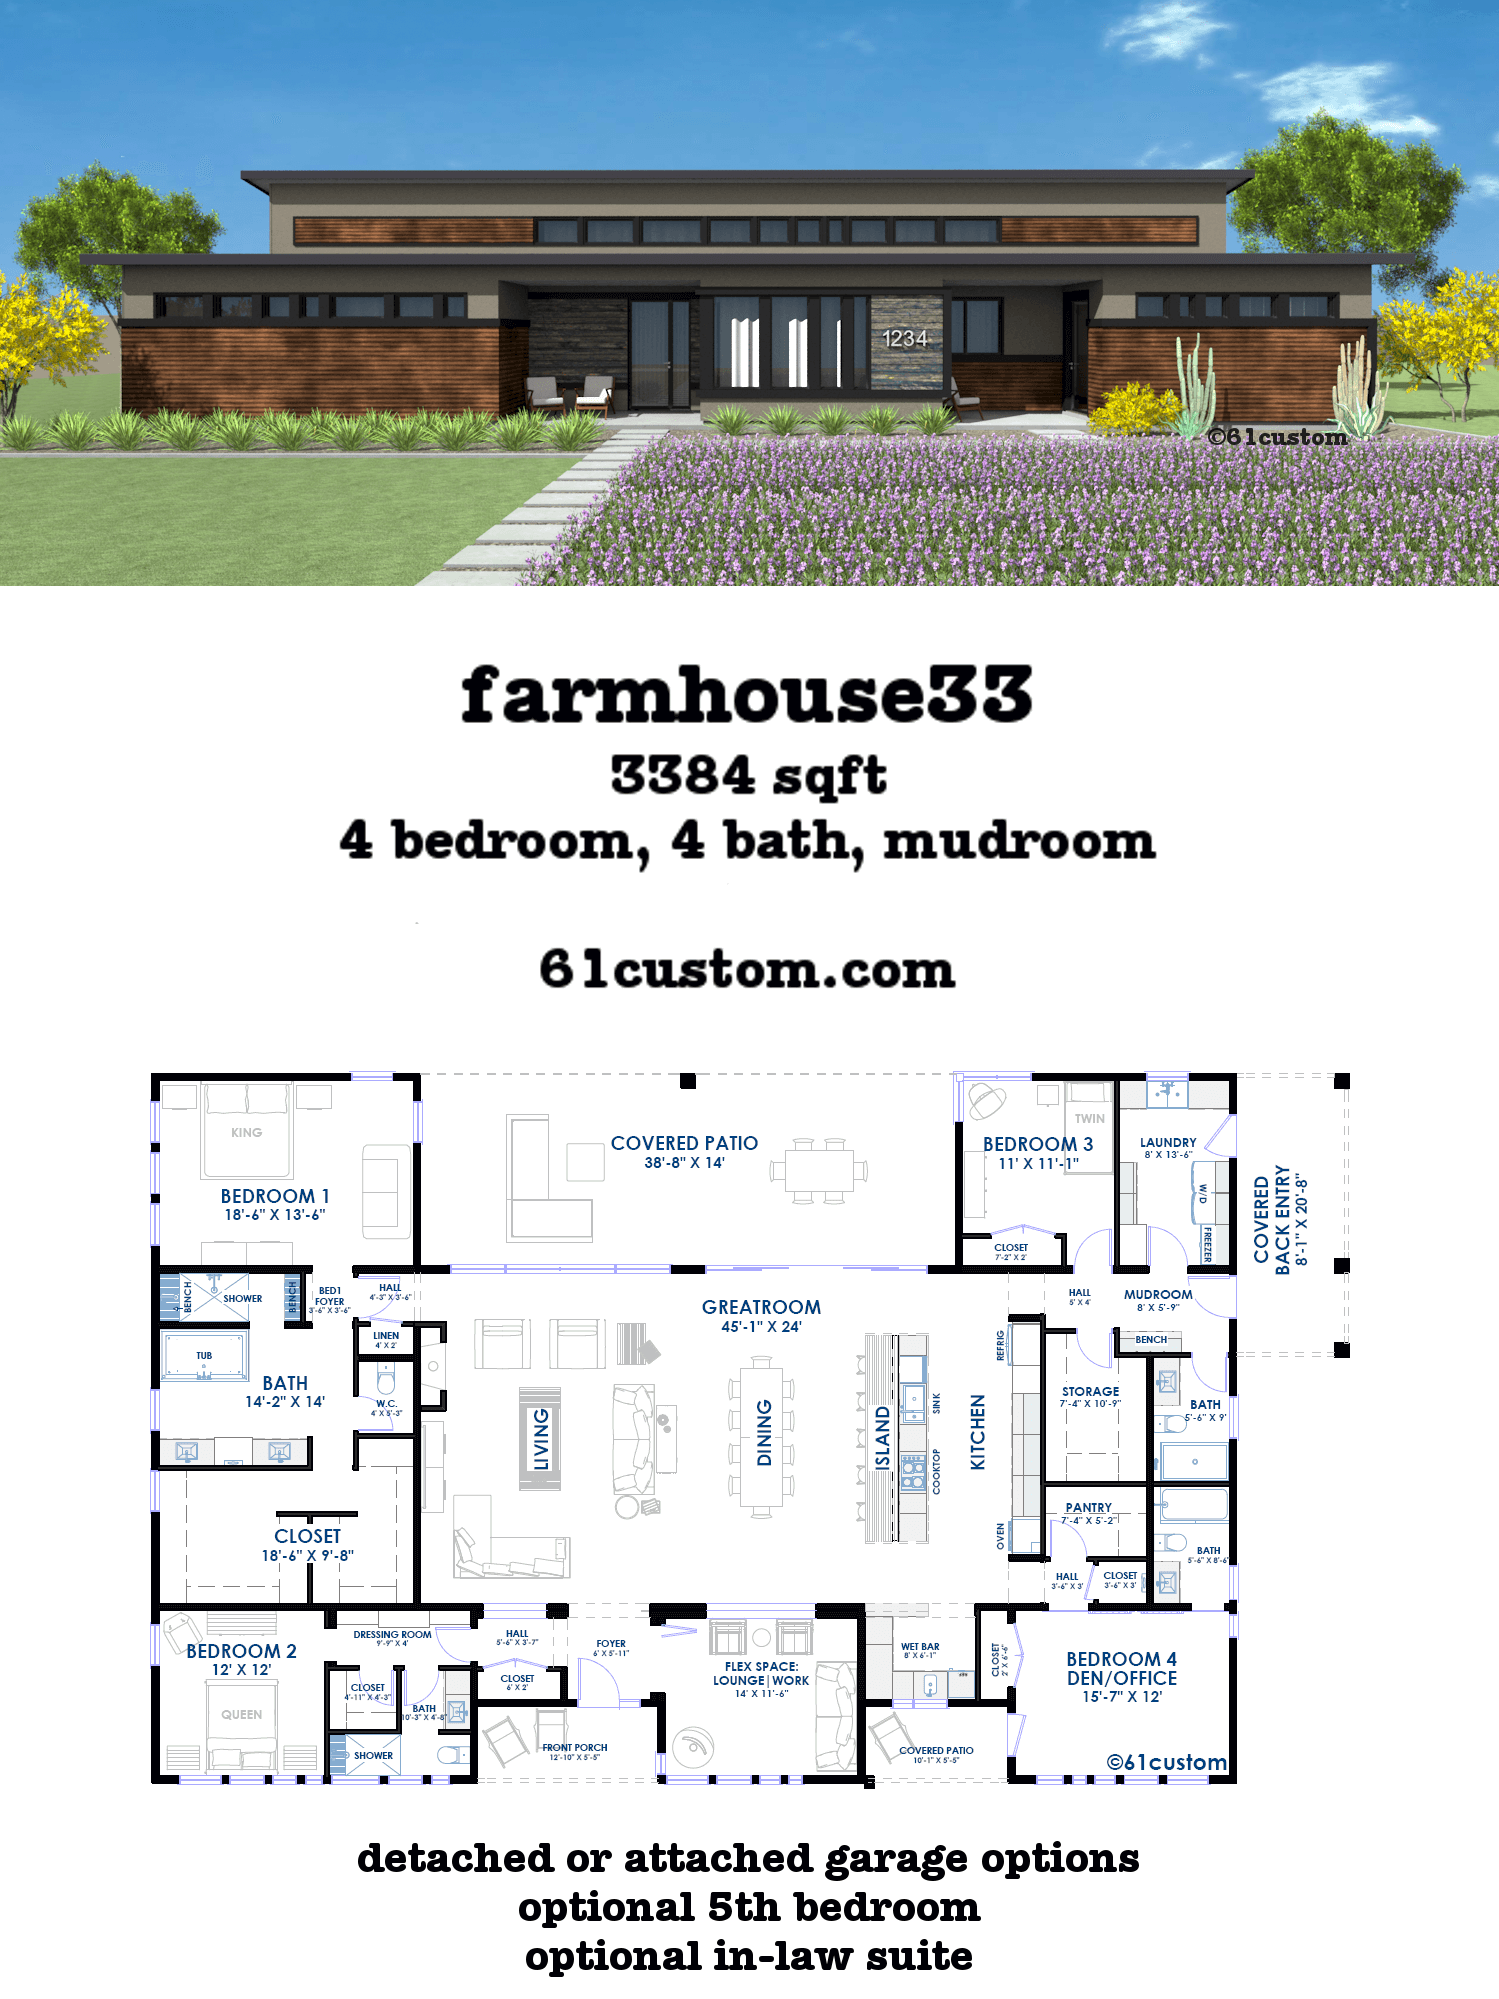 farmhouse33 modern farmhouse plan farmhouse33 houseplan 61customcom